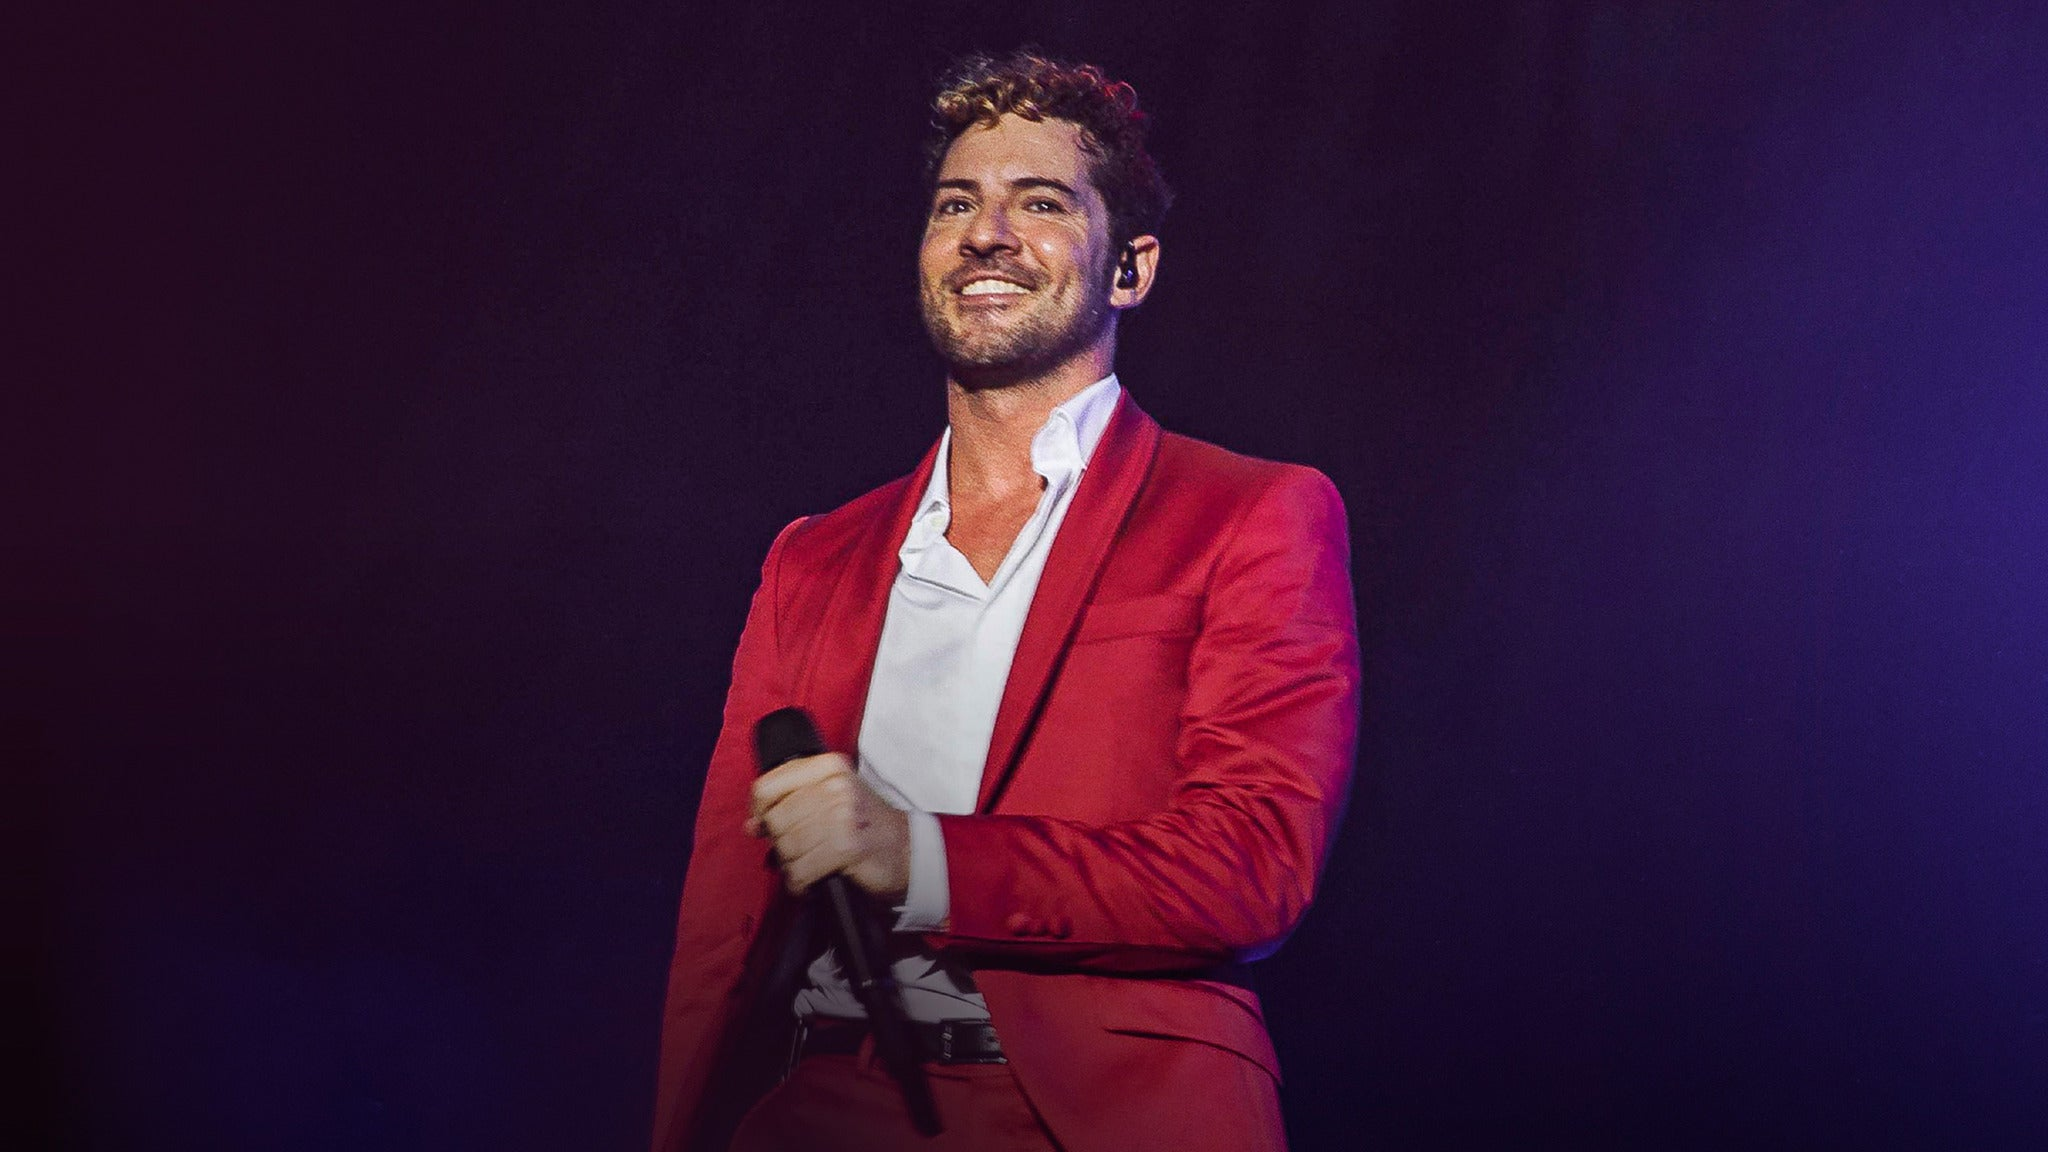 David Bisbal at San Jose Civic